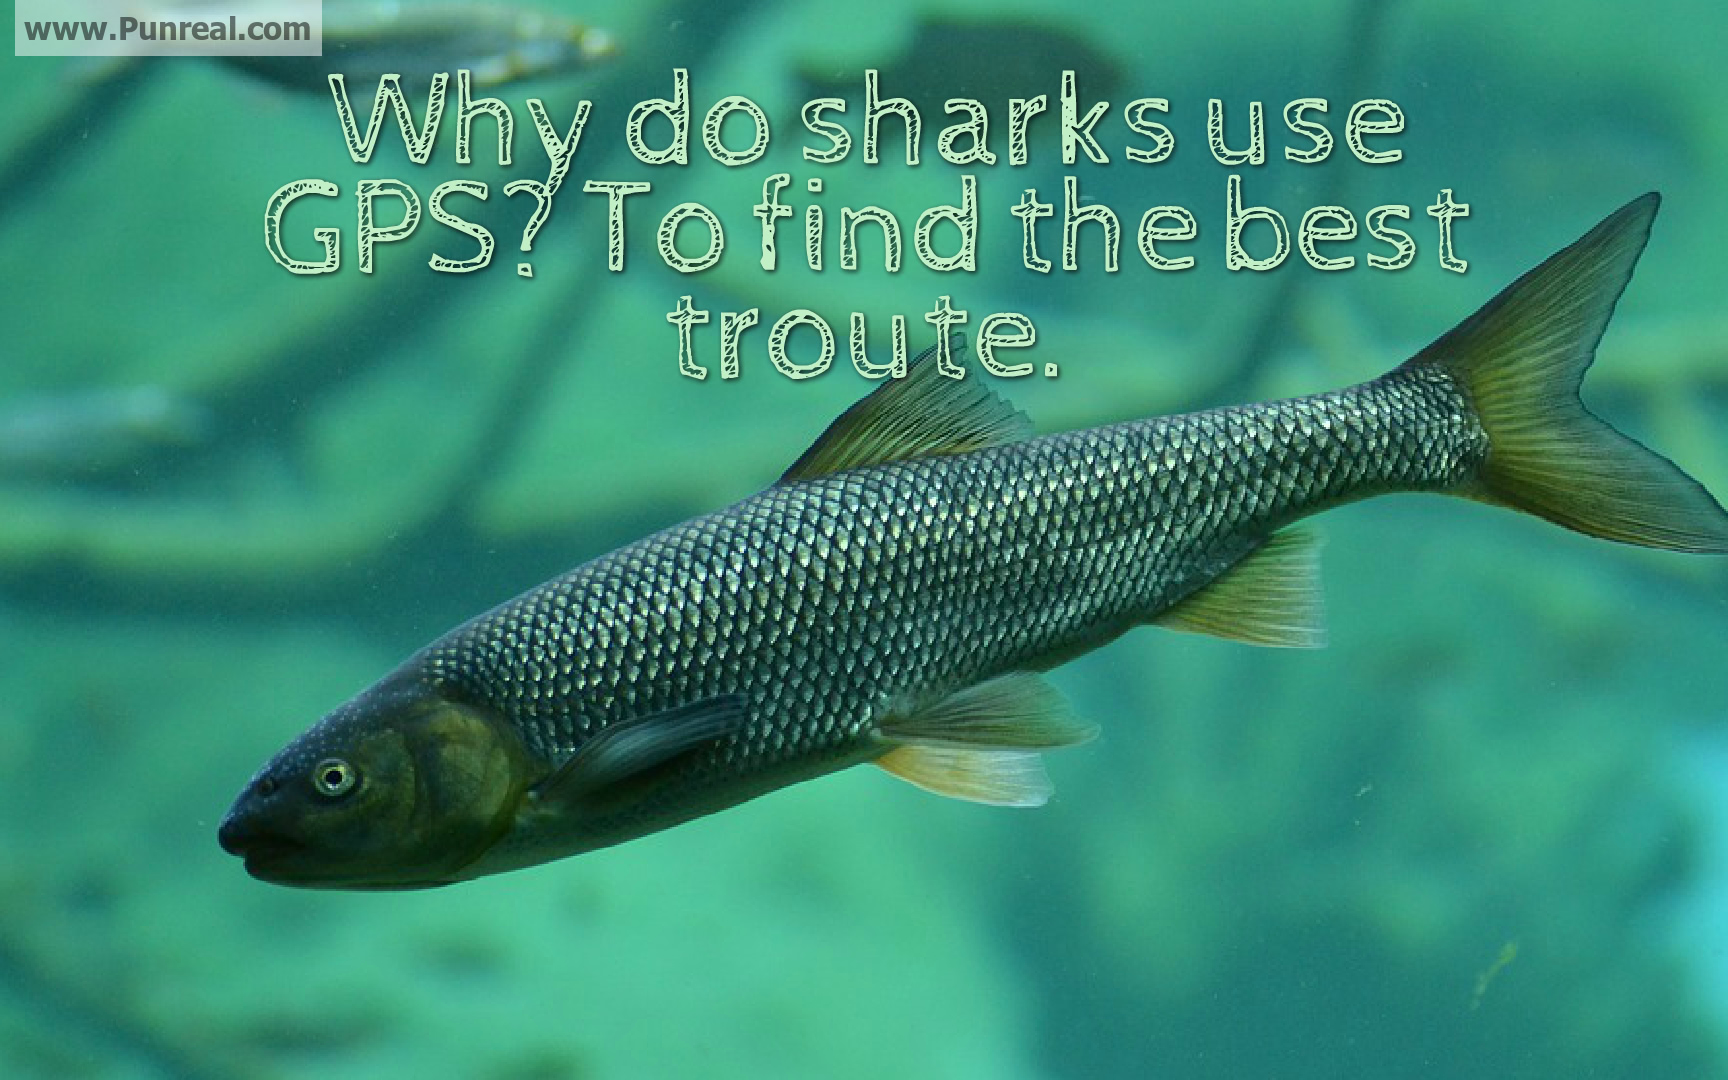 Why do sharks need GPS? To find the best troute.